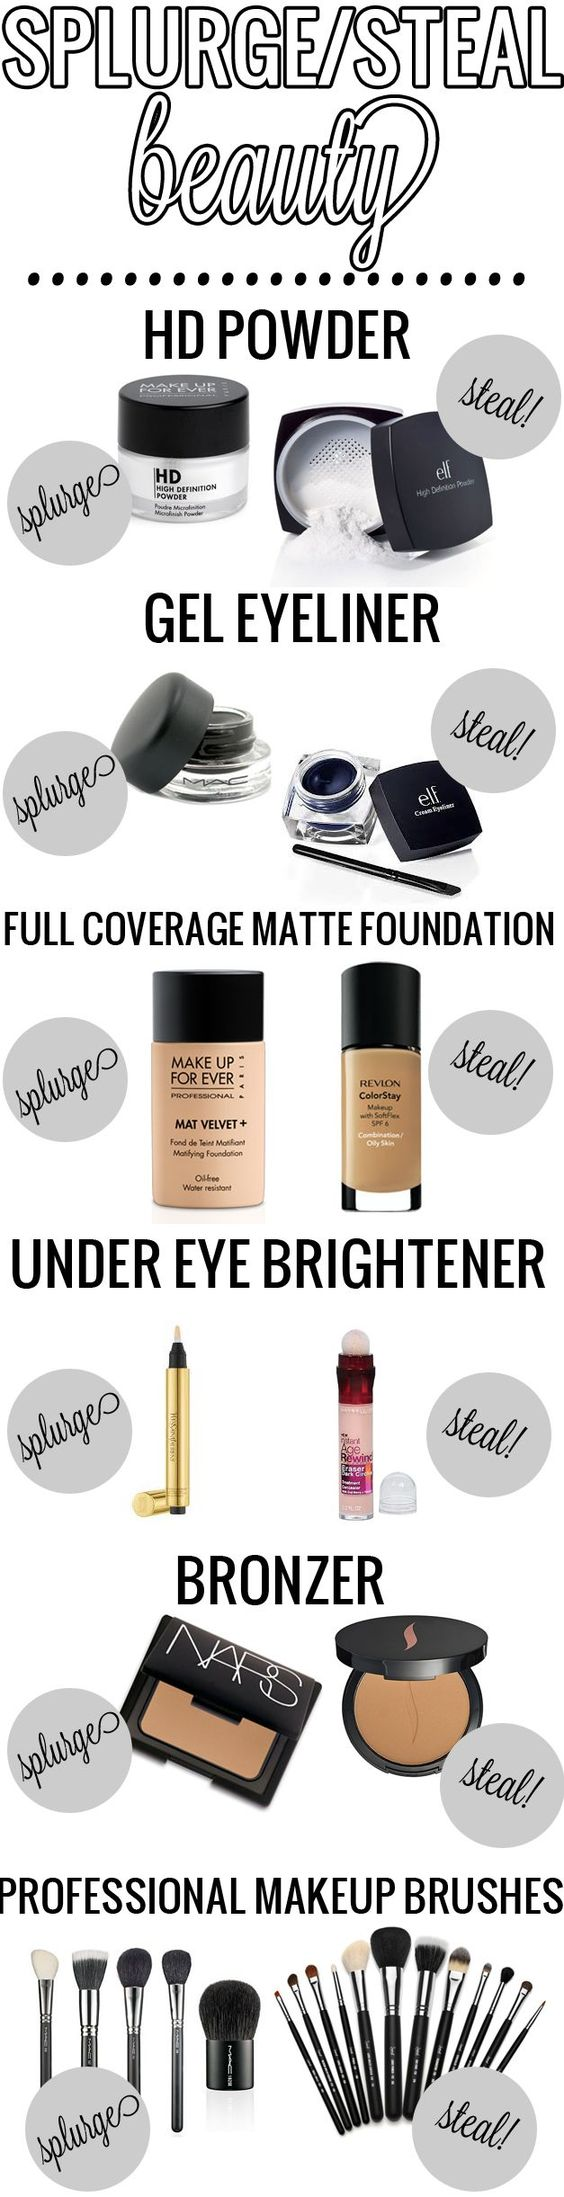 Sephora bronzer in Los Cabos...matte..hmmm..Splurge / Steal Beauty. Great dupes! #beauty #makeup